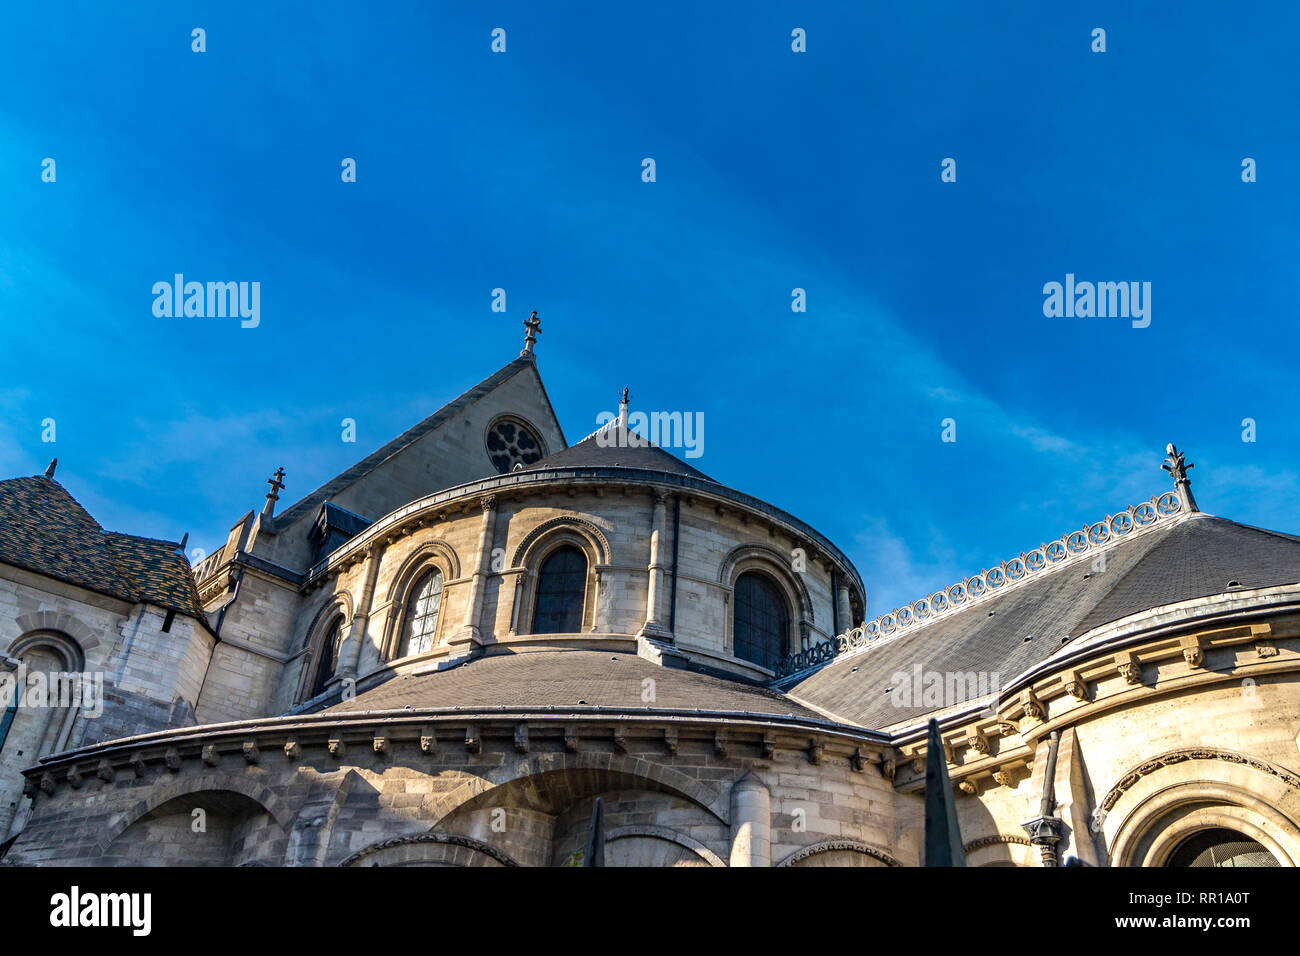 The exterior of  The Musée des Arts et Métiers , an industrial design museum housed in the priory of Saint-Martin-des-Champs on Rue Réaumur, Paris - Stock Image